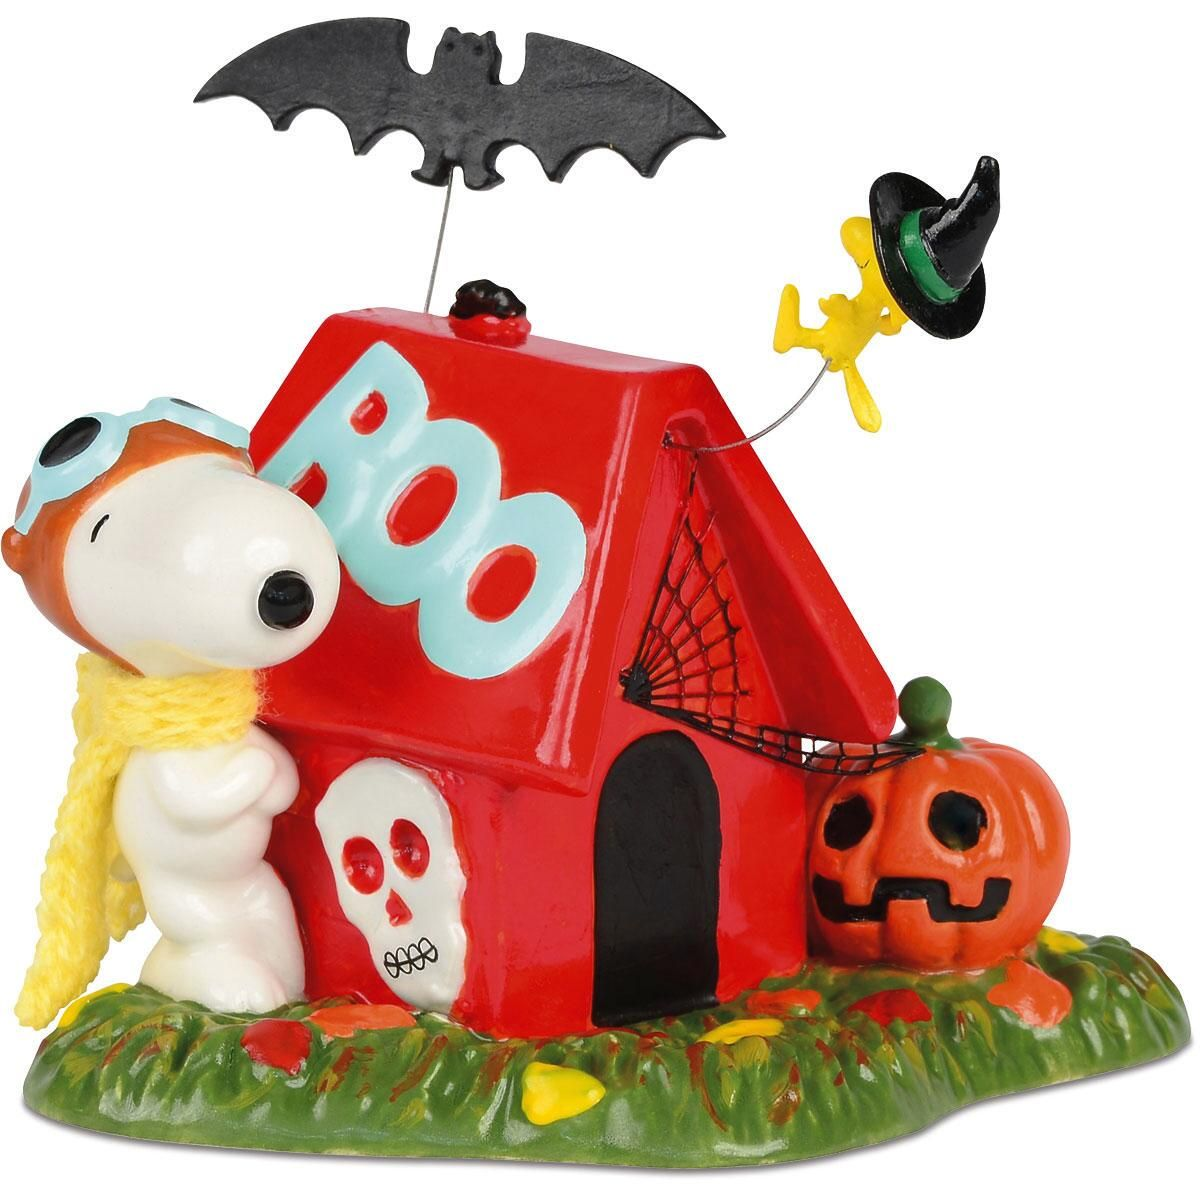 Snoopy's Spooky House